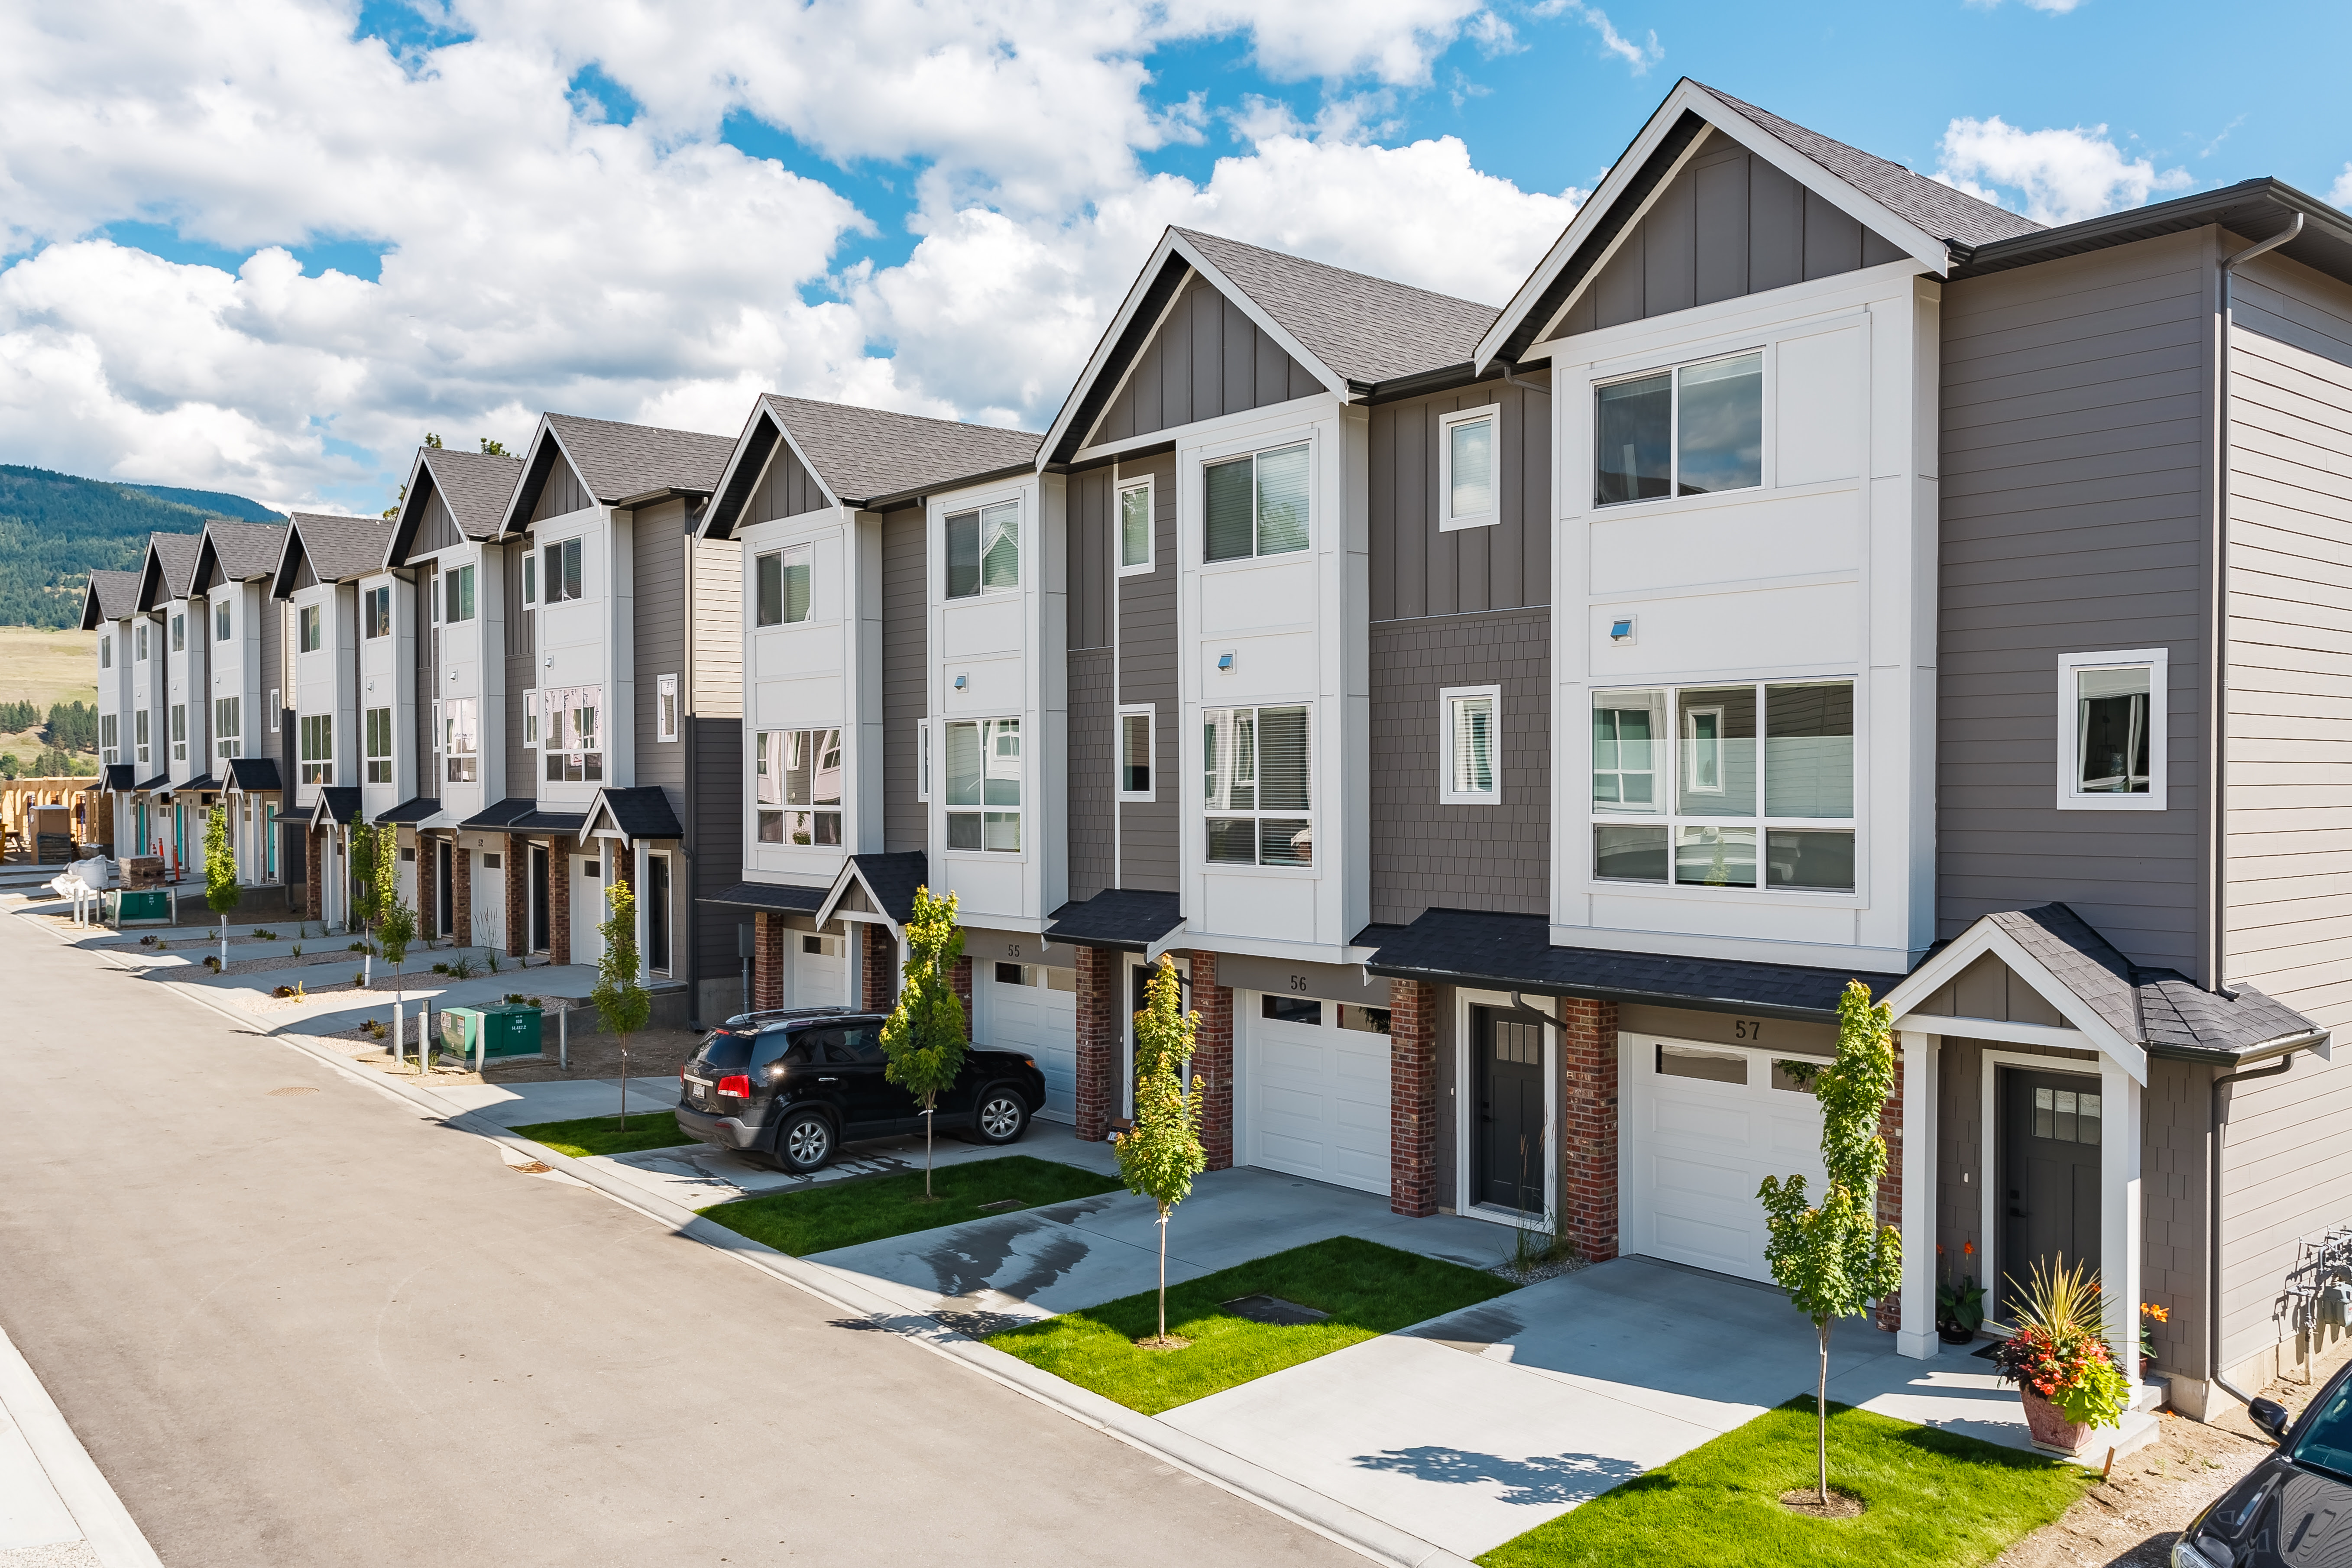 3 Bedroom Lake Country Townhome